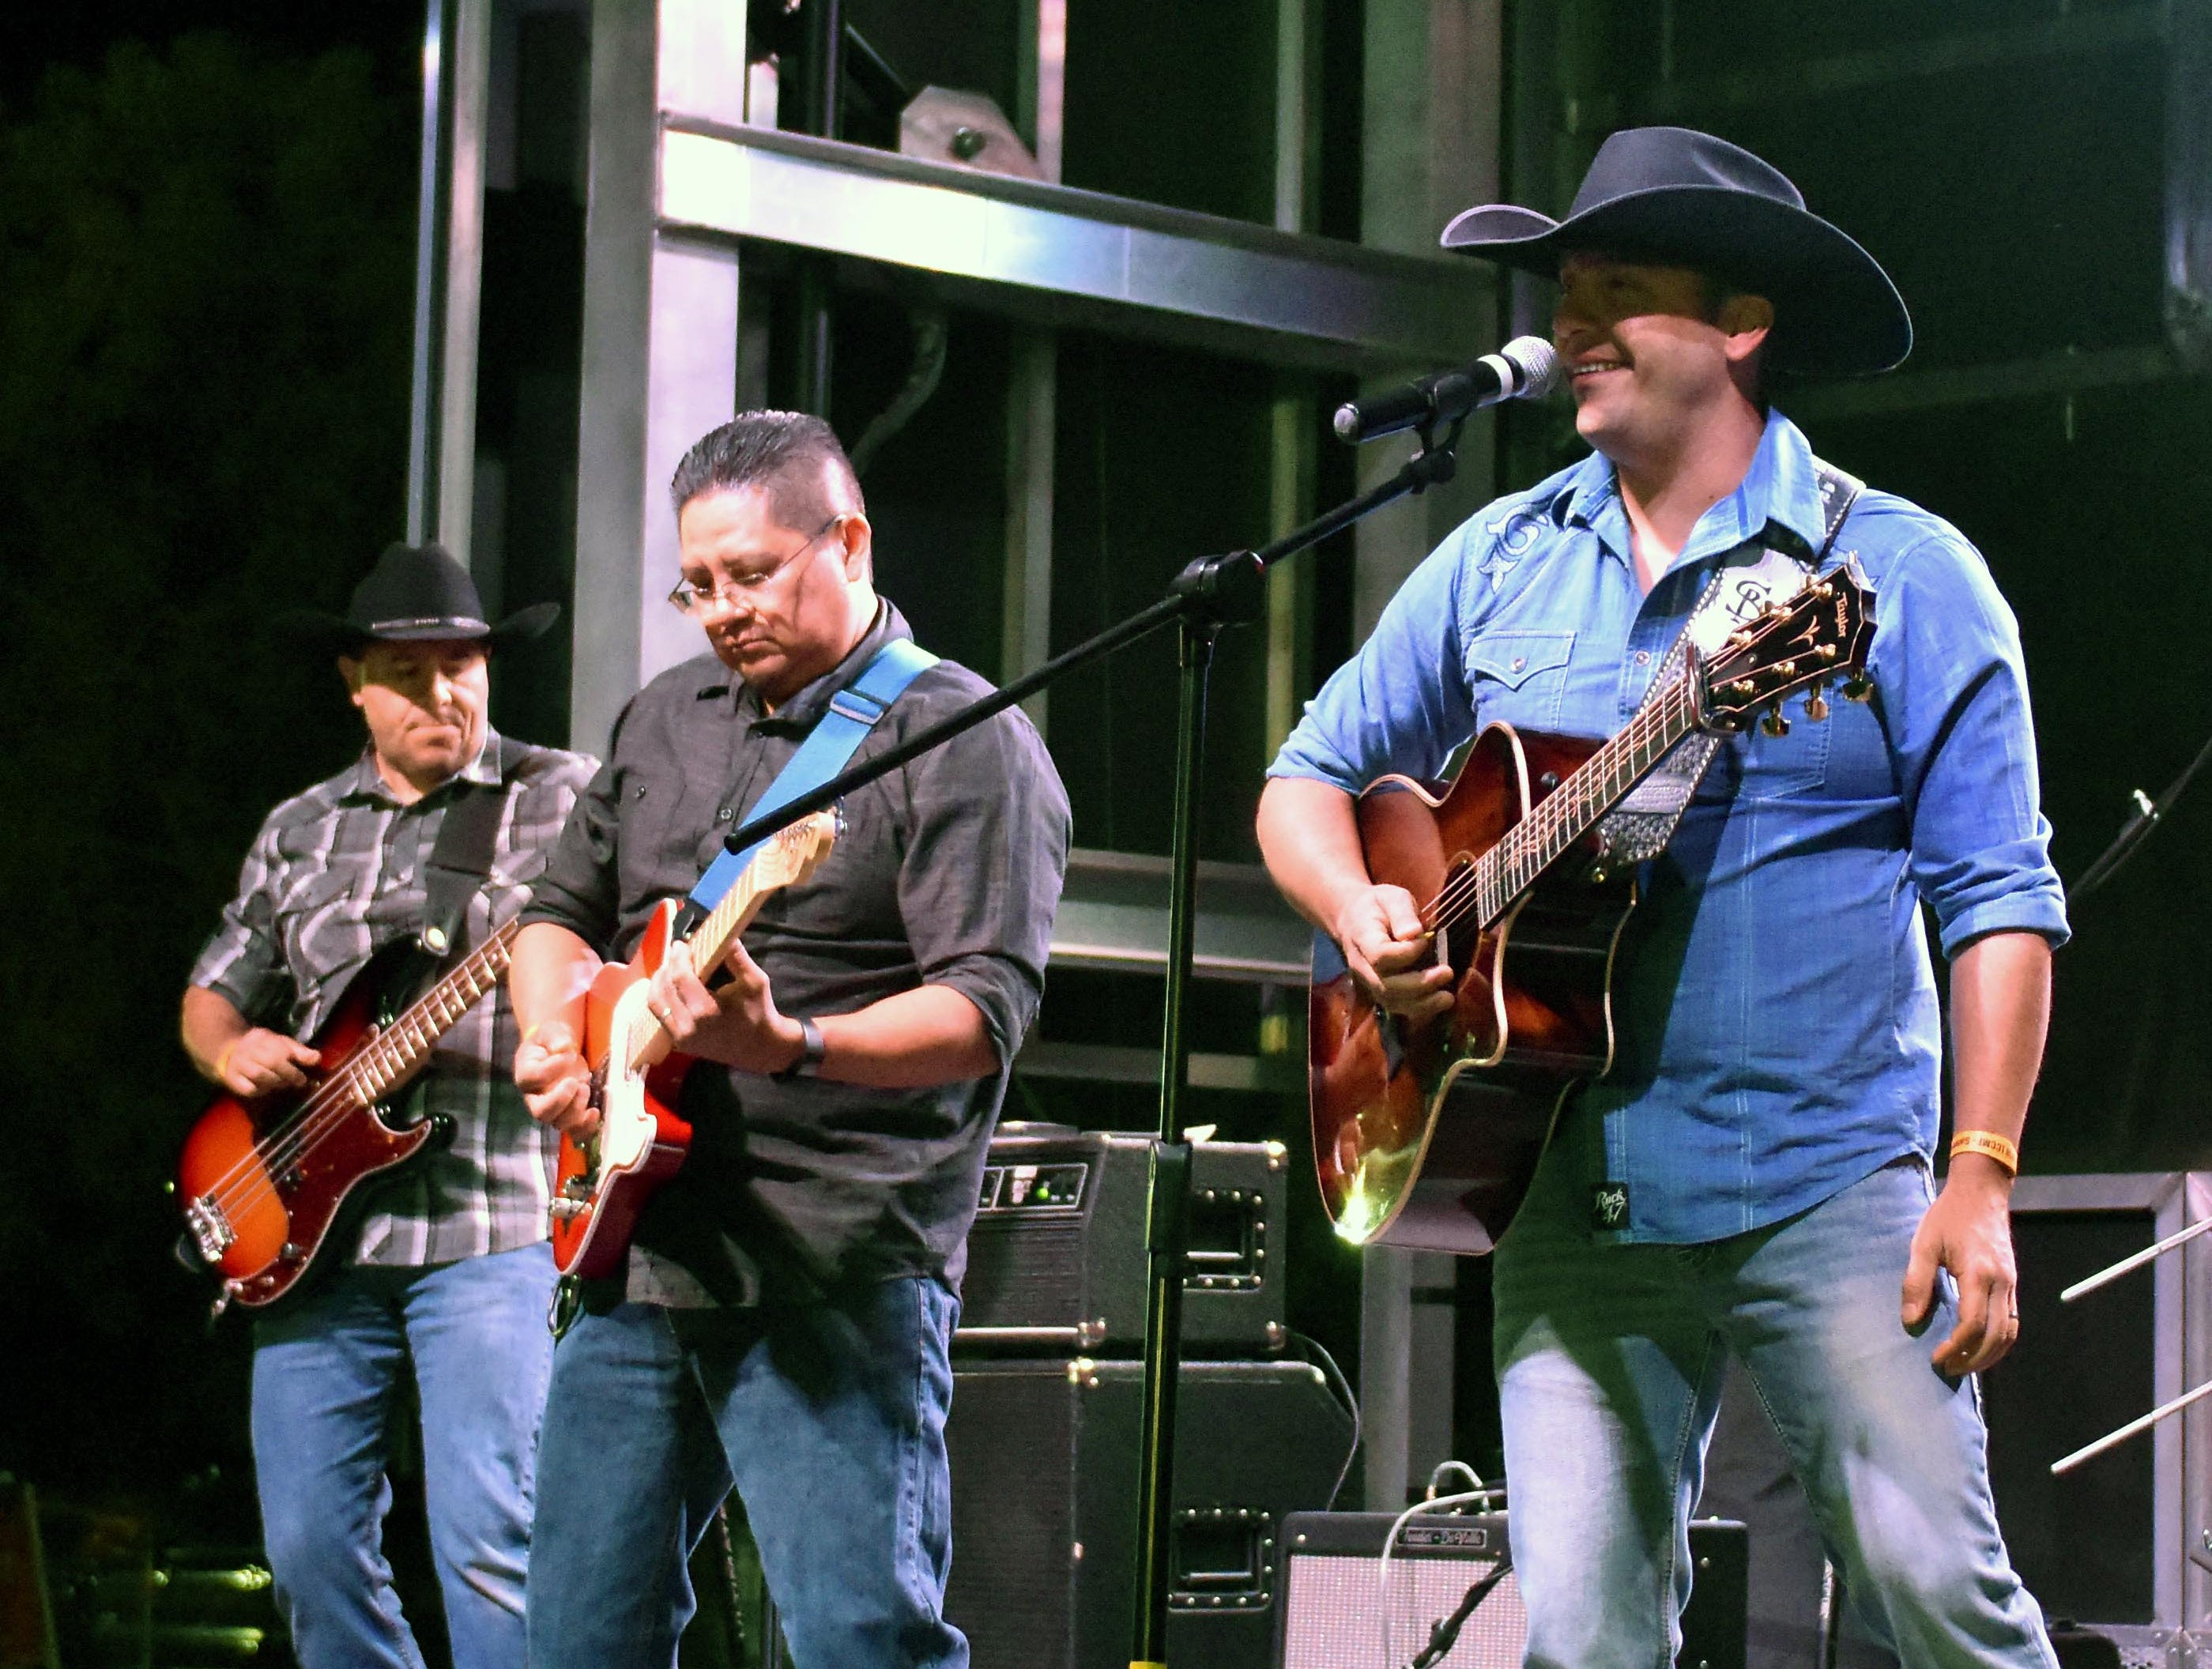 Sim Balkey and his band hit the Second Stage at the Las Cruces Country Music Festival on Saturday, Oct. 20, 2018.